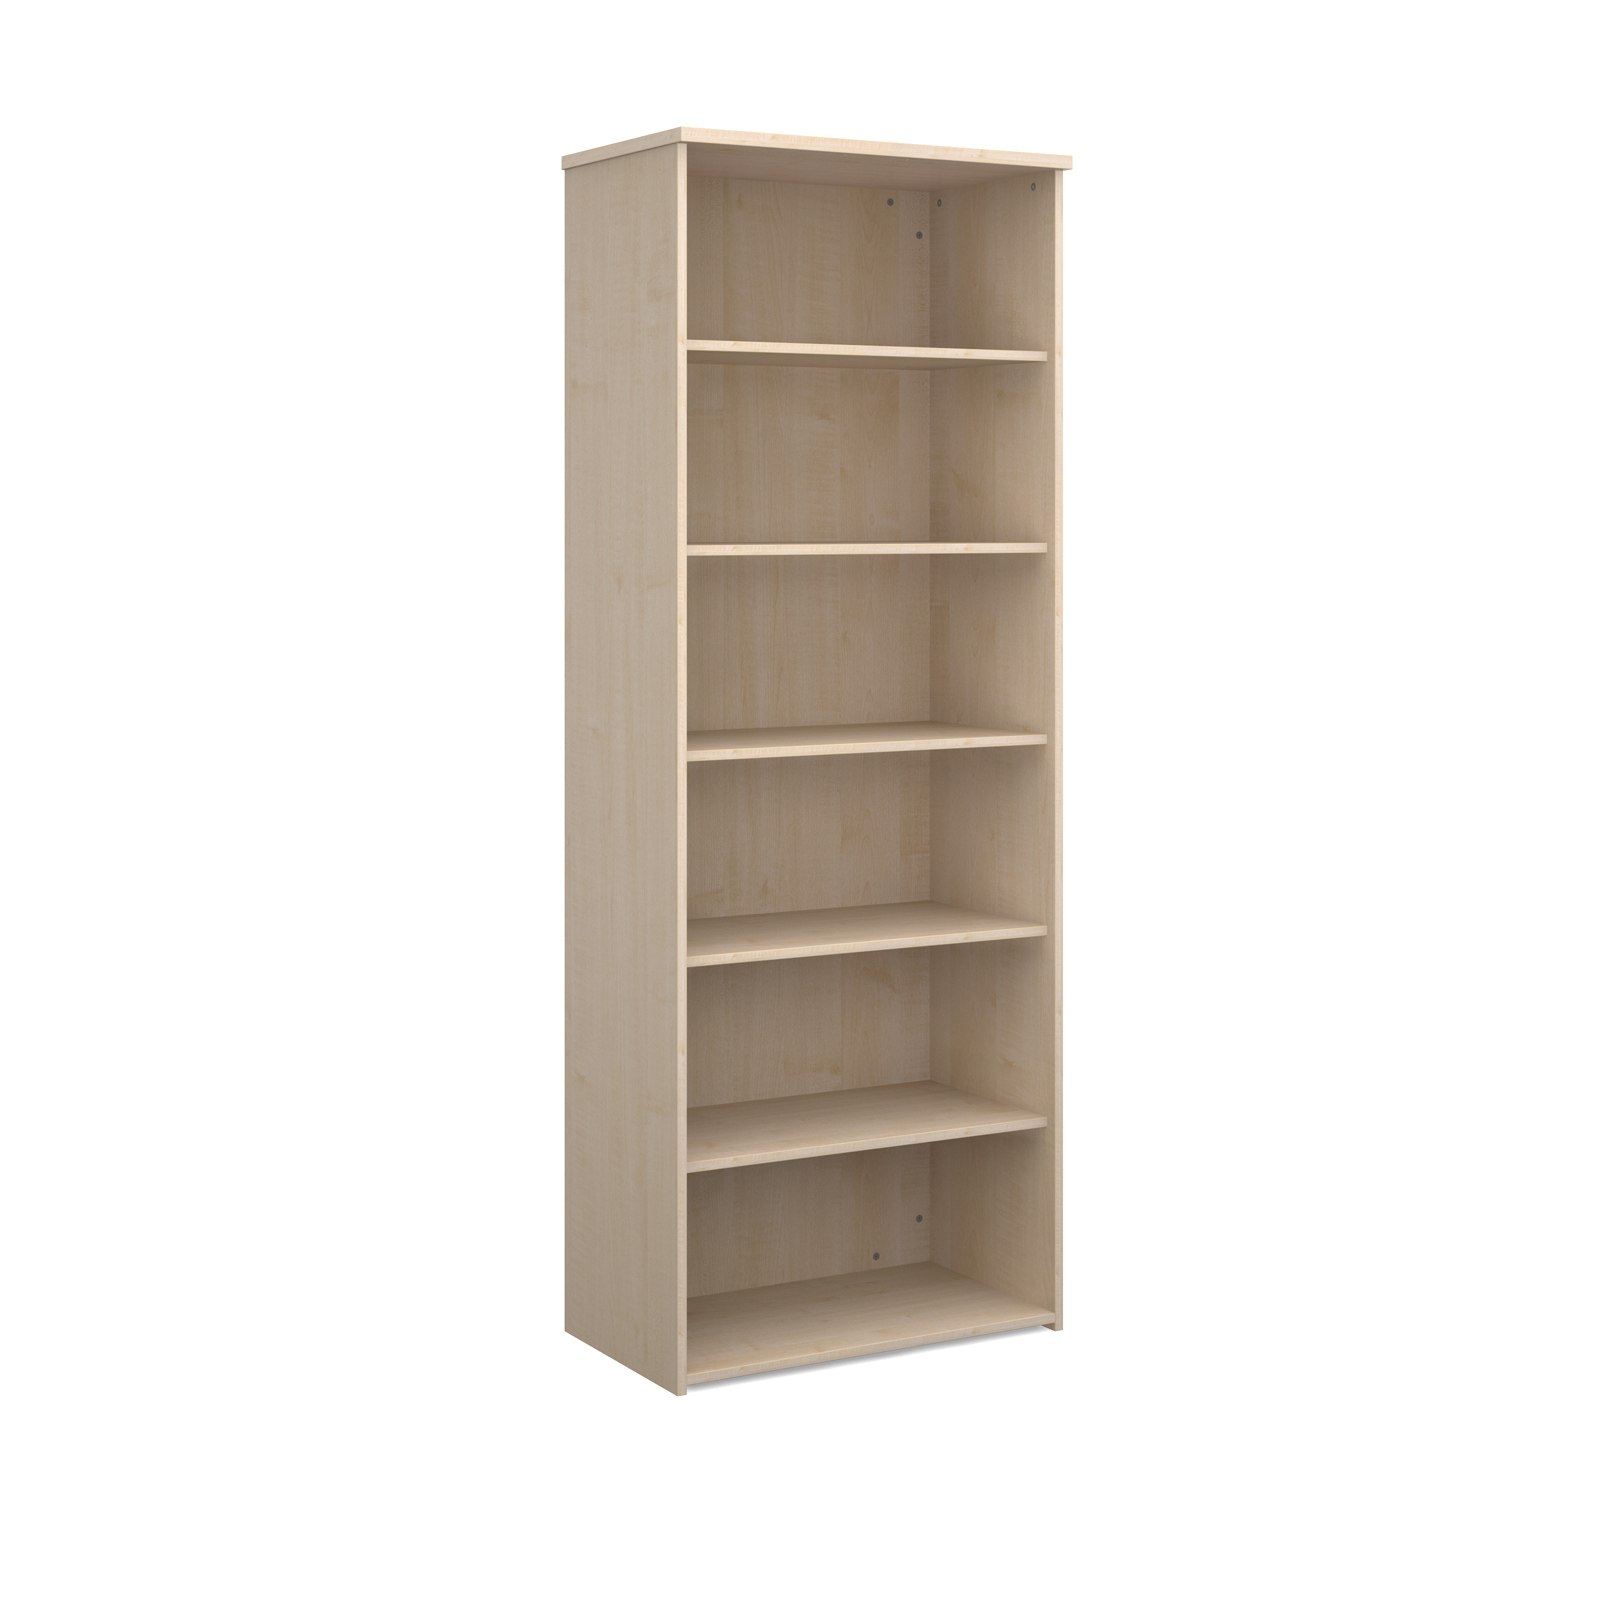 Universal Bookcase 2140mm High With 4 Shelves Maple